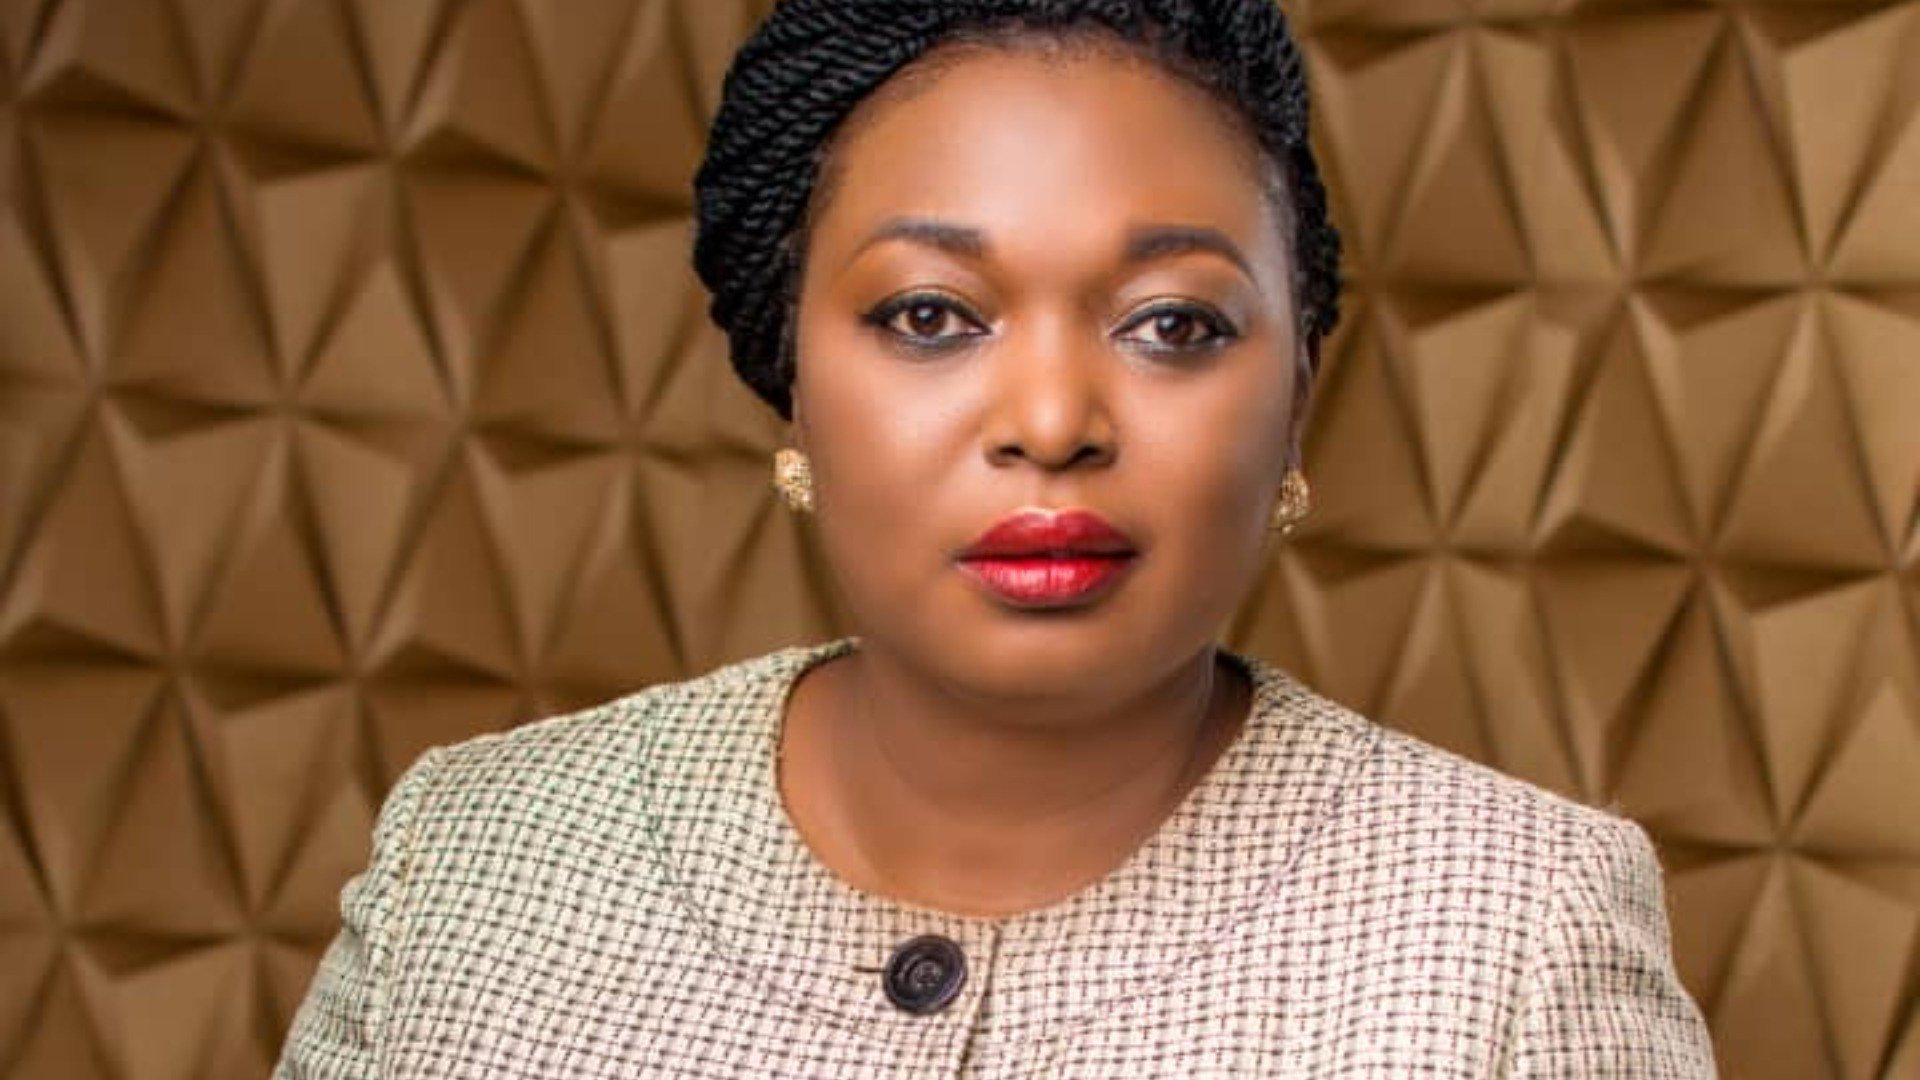 Prior to the 2019 Kogi State governorship election, a female aspirant, Princess Iye Grace Adejoh, under the Peoples Democratic Party, stated that the state needs a female Governor to rescue the state.